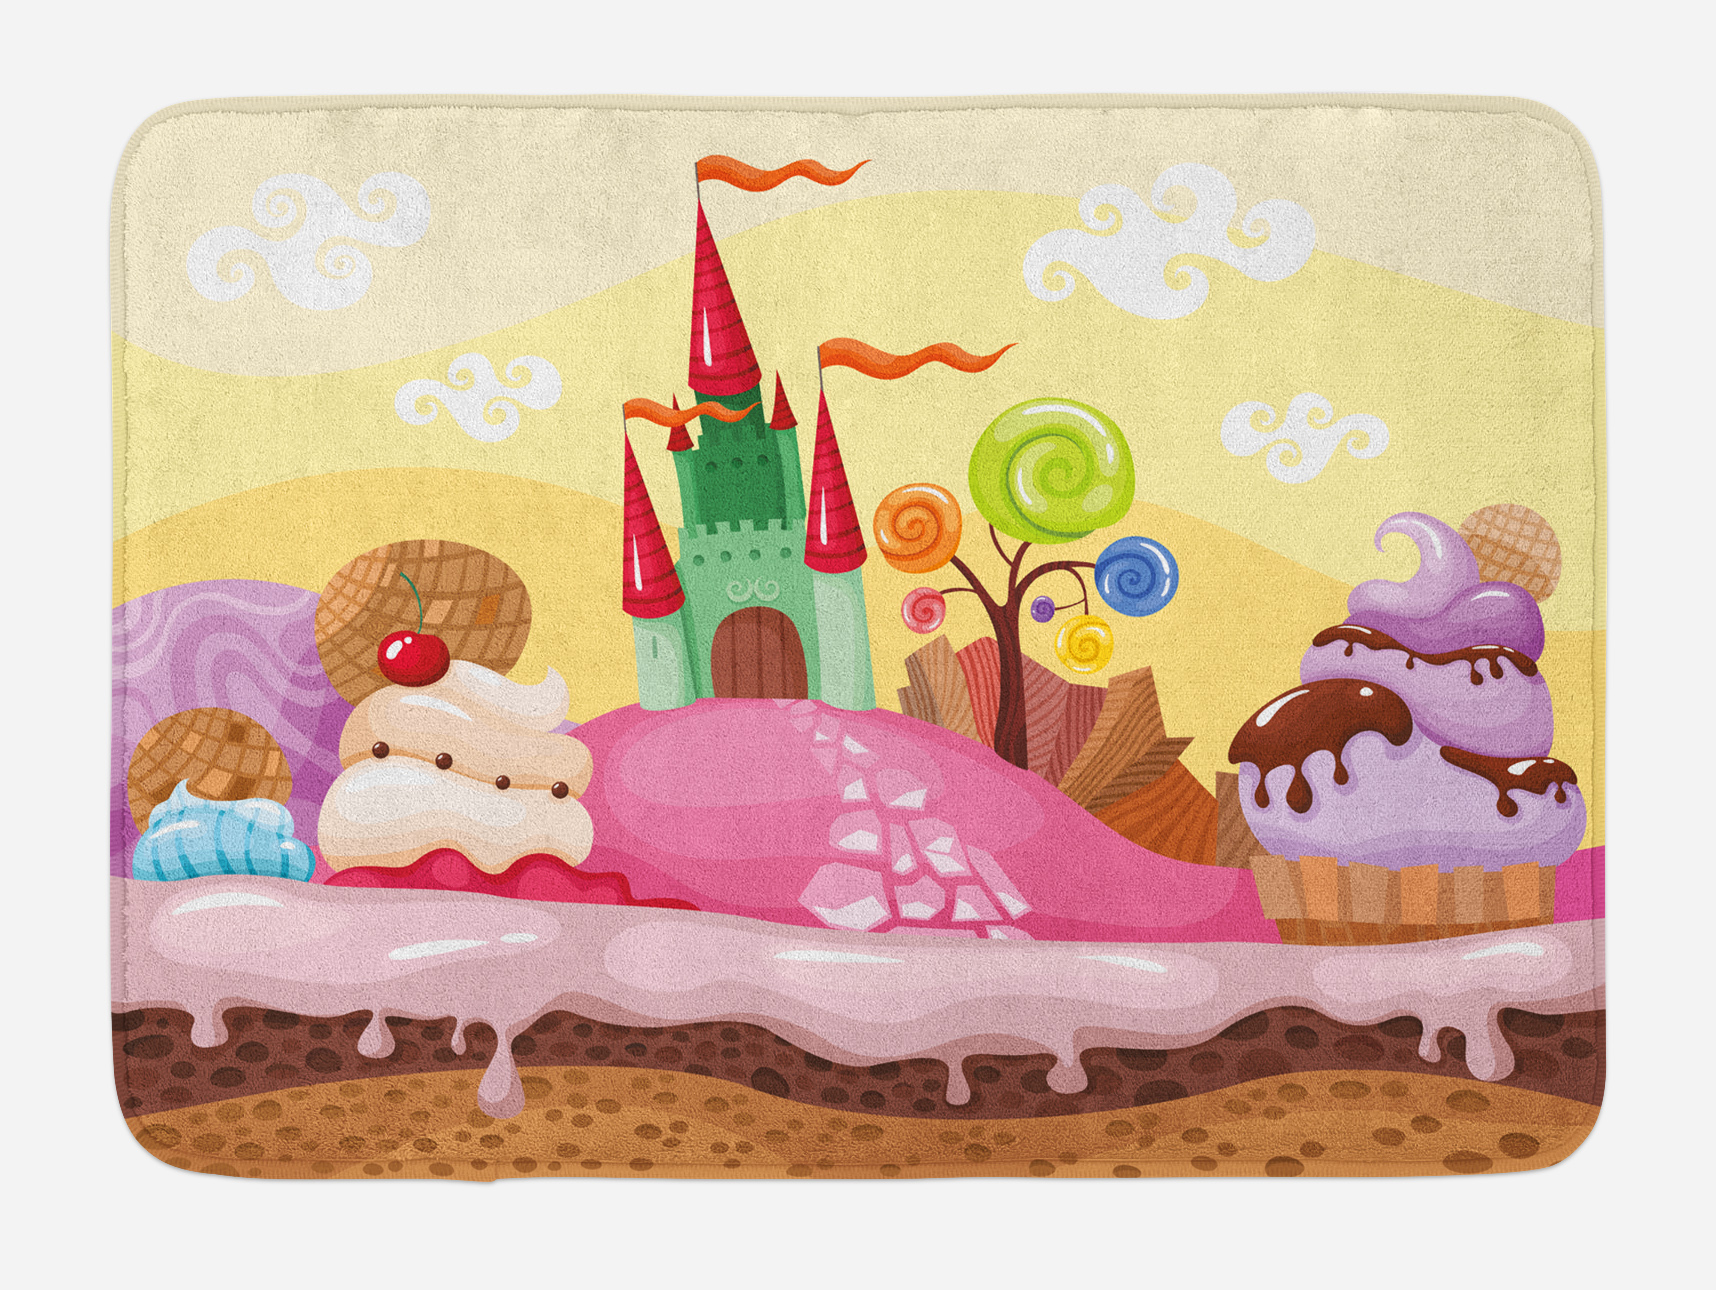 Cartoon Bath Mat, Kids Sweet Castle Landscape with Donuts Muffins Ice Cream Nursery IMage,... by 3decor llc